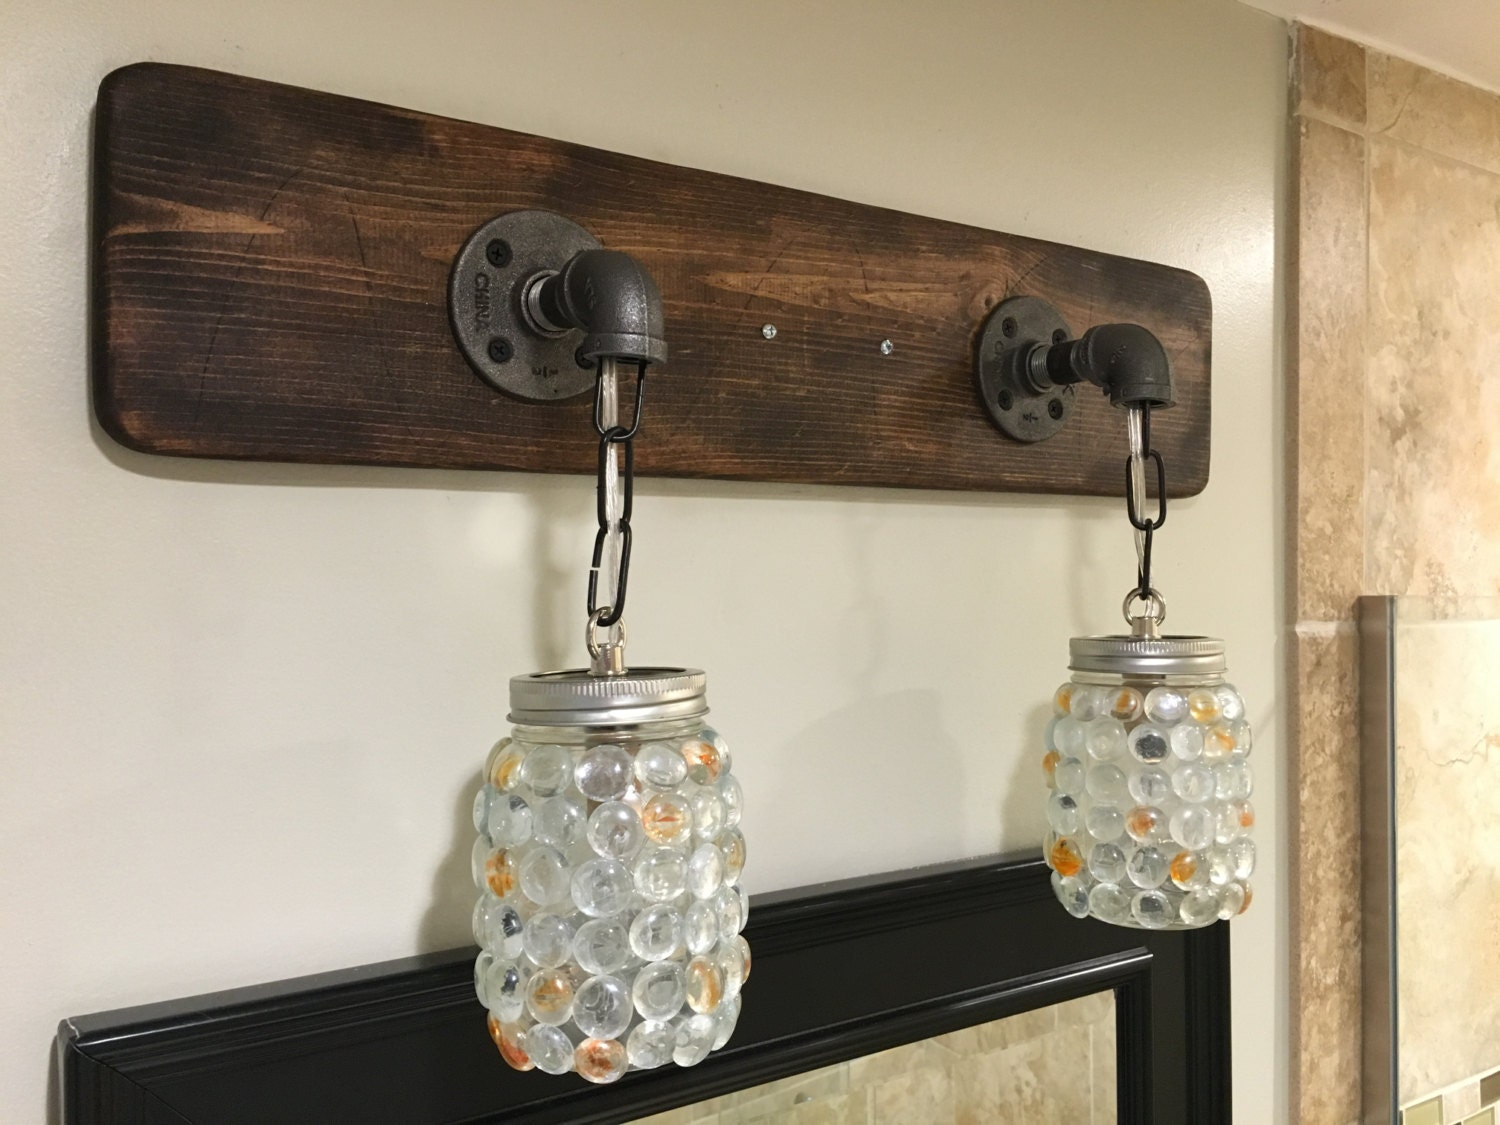 Vanity Light Fixture Mason Jar Gems Light Fixture by Lightrooom